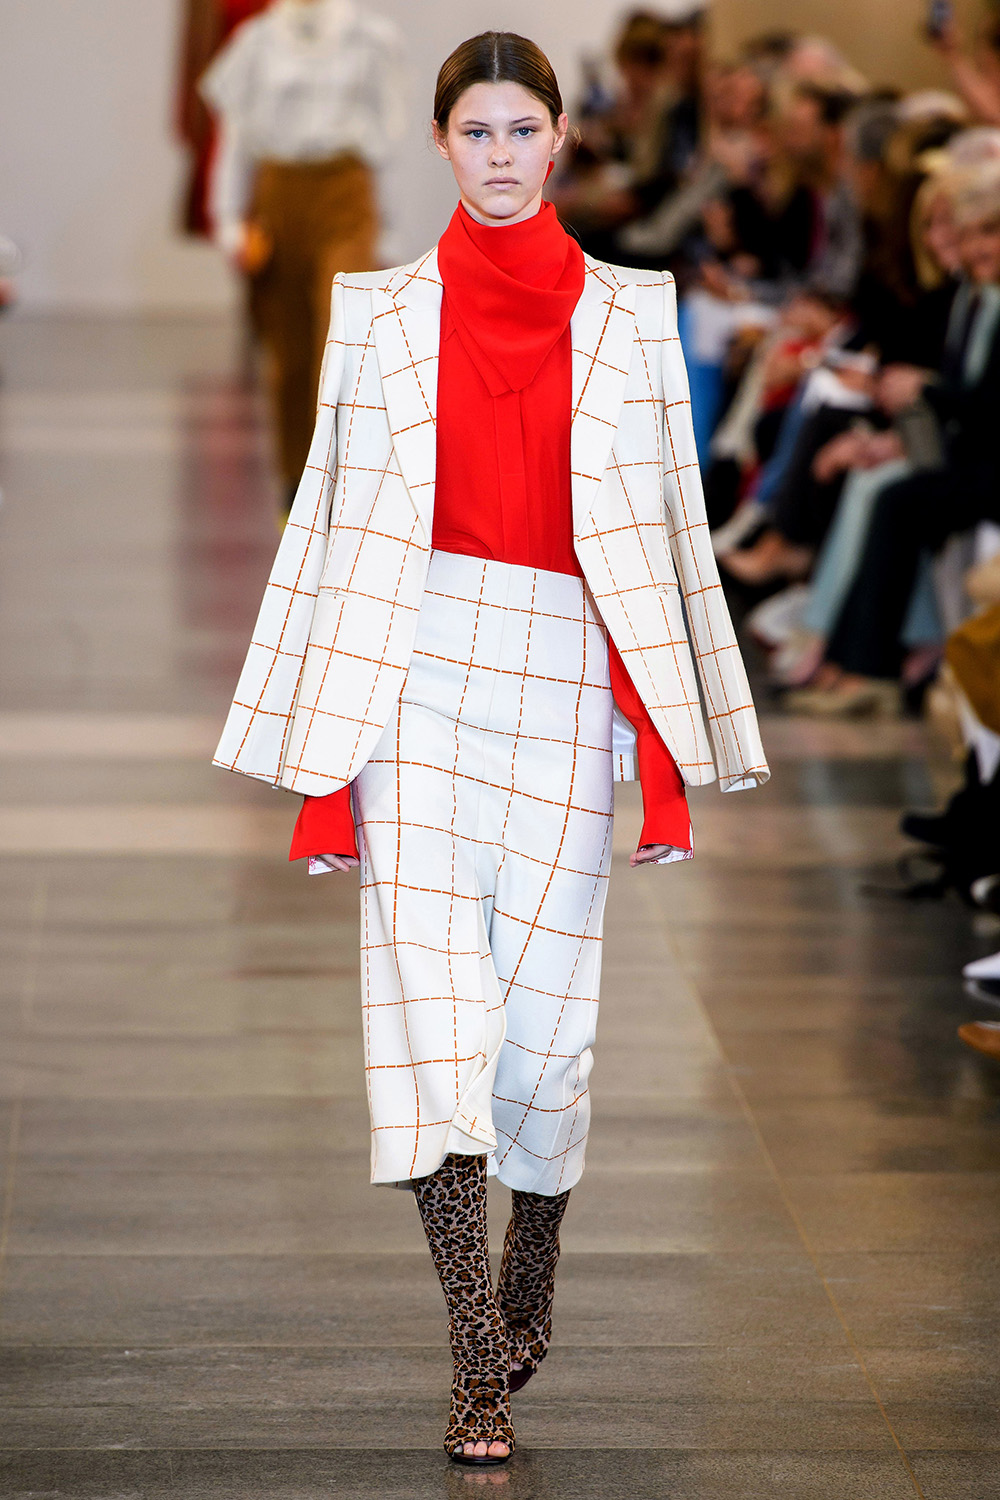 Best London Fashion Week Looks Off the Fall 2019 Runways I Victoria Beckham suiting #FashionWeek #LFW #DesignerFashion